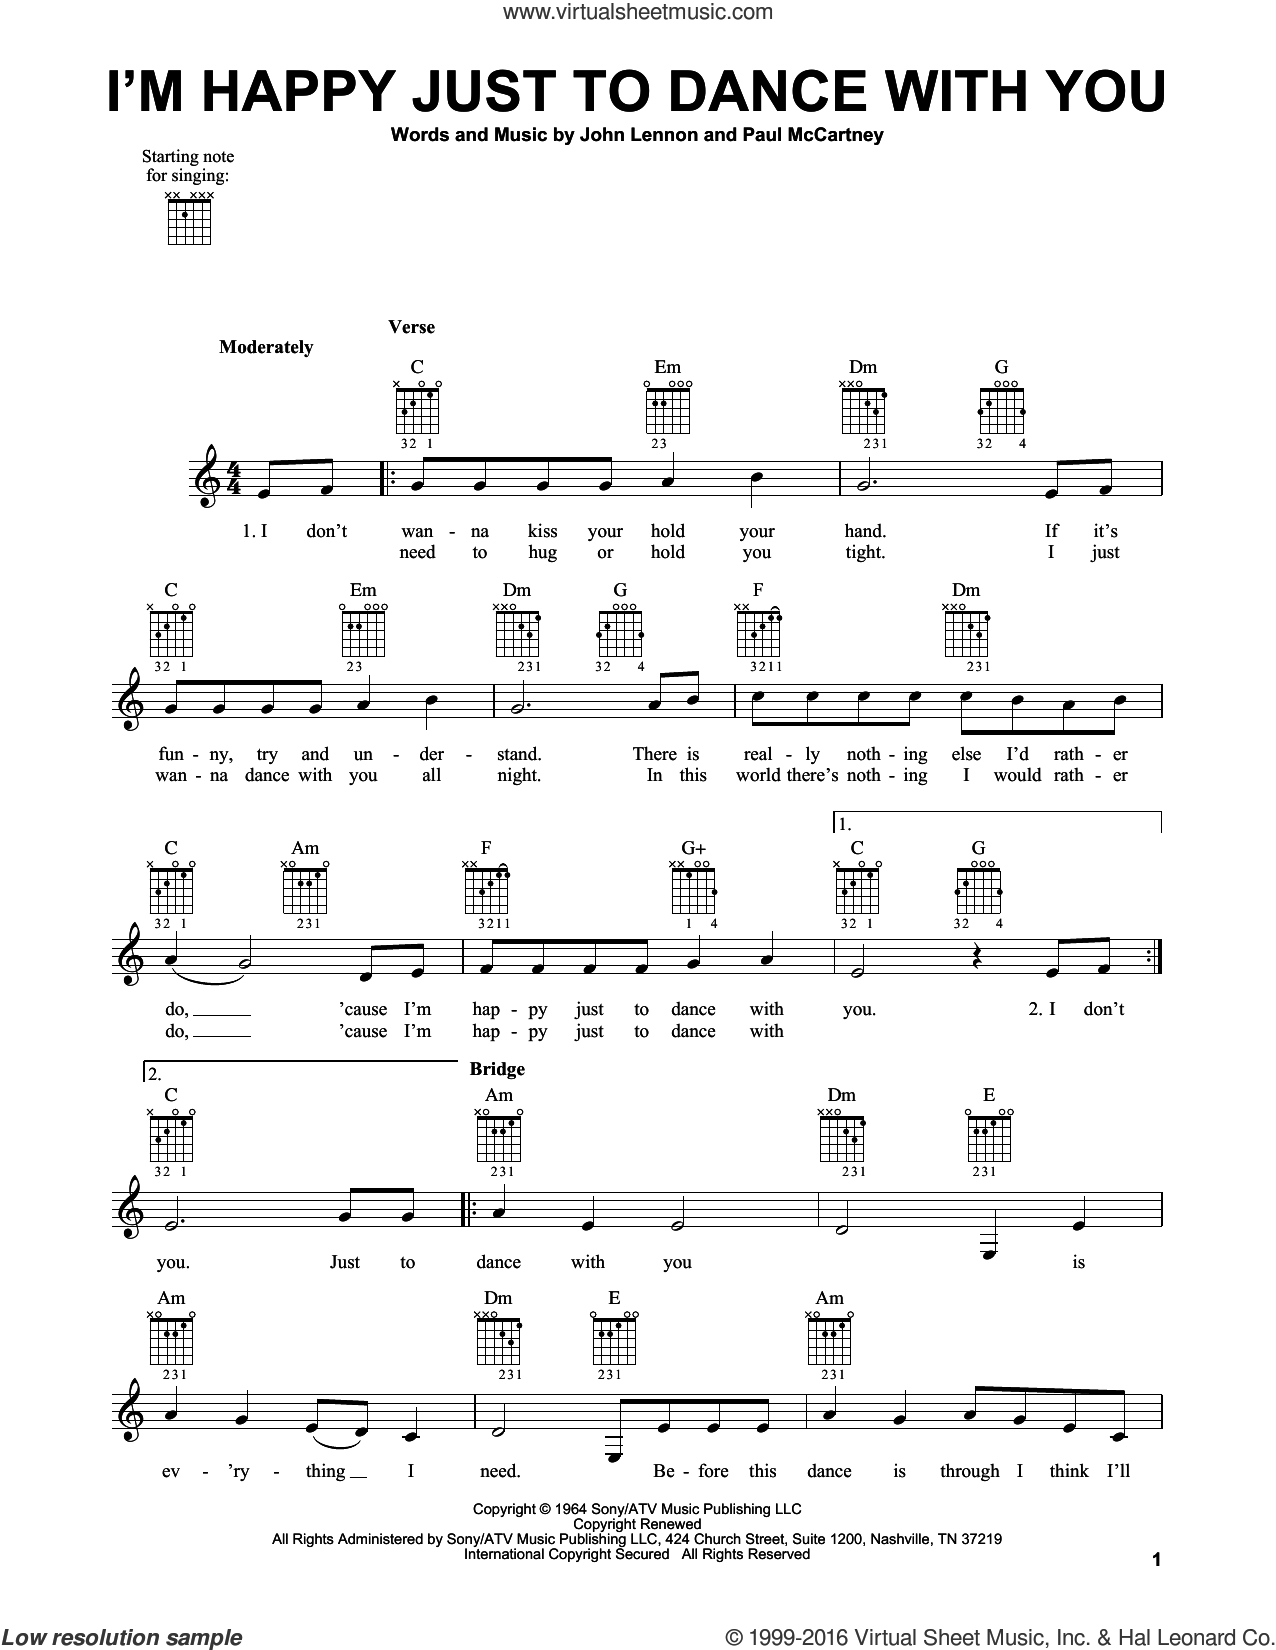 I'm Happy Just To Dance With You sheet music for guitar solo (chords) by The Beatles, John Lennon and Paul McCartney. Score Image Preview.